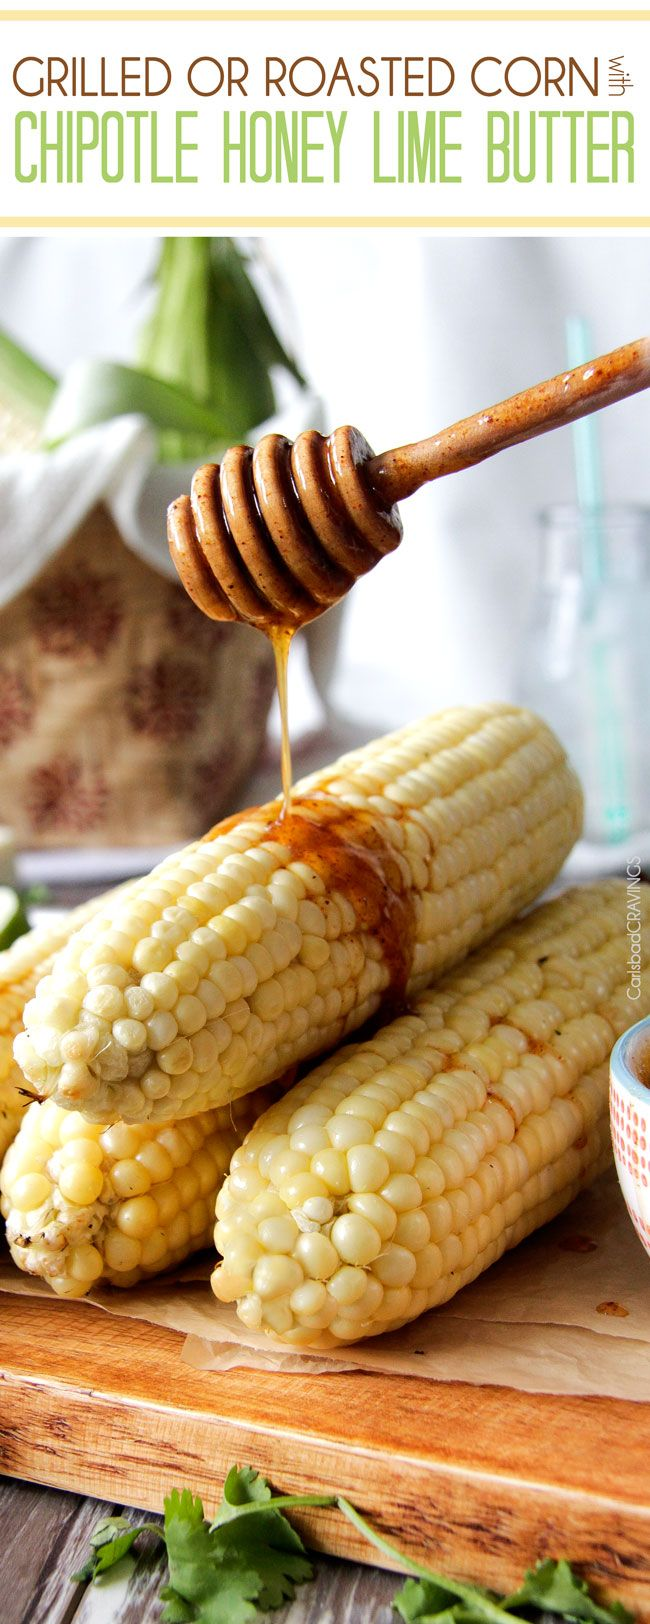 images about Grilled corn on the cob recipes on Pinterest | Sweet corn ...